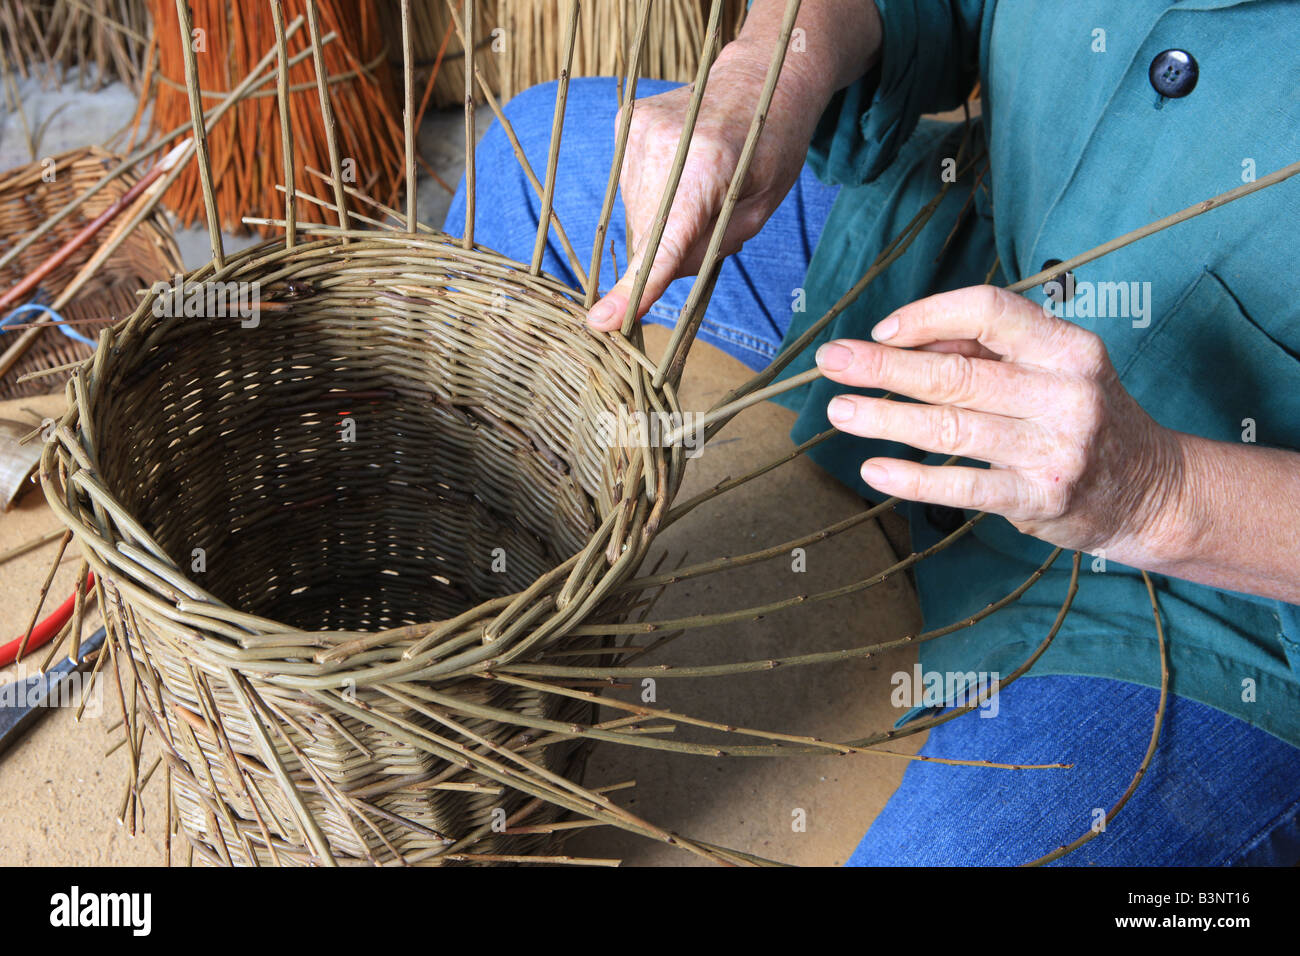 Traditional Basket Making : Norah kennedy making traditional baskets from willow in